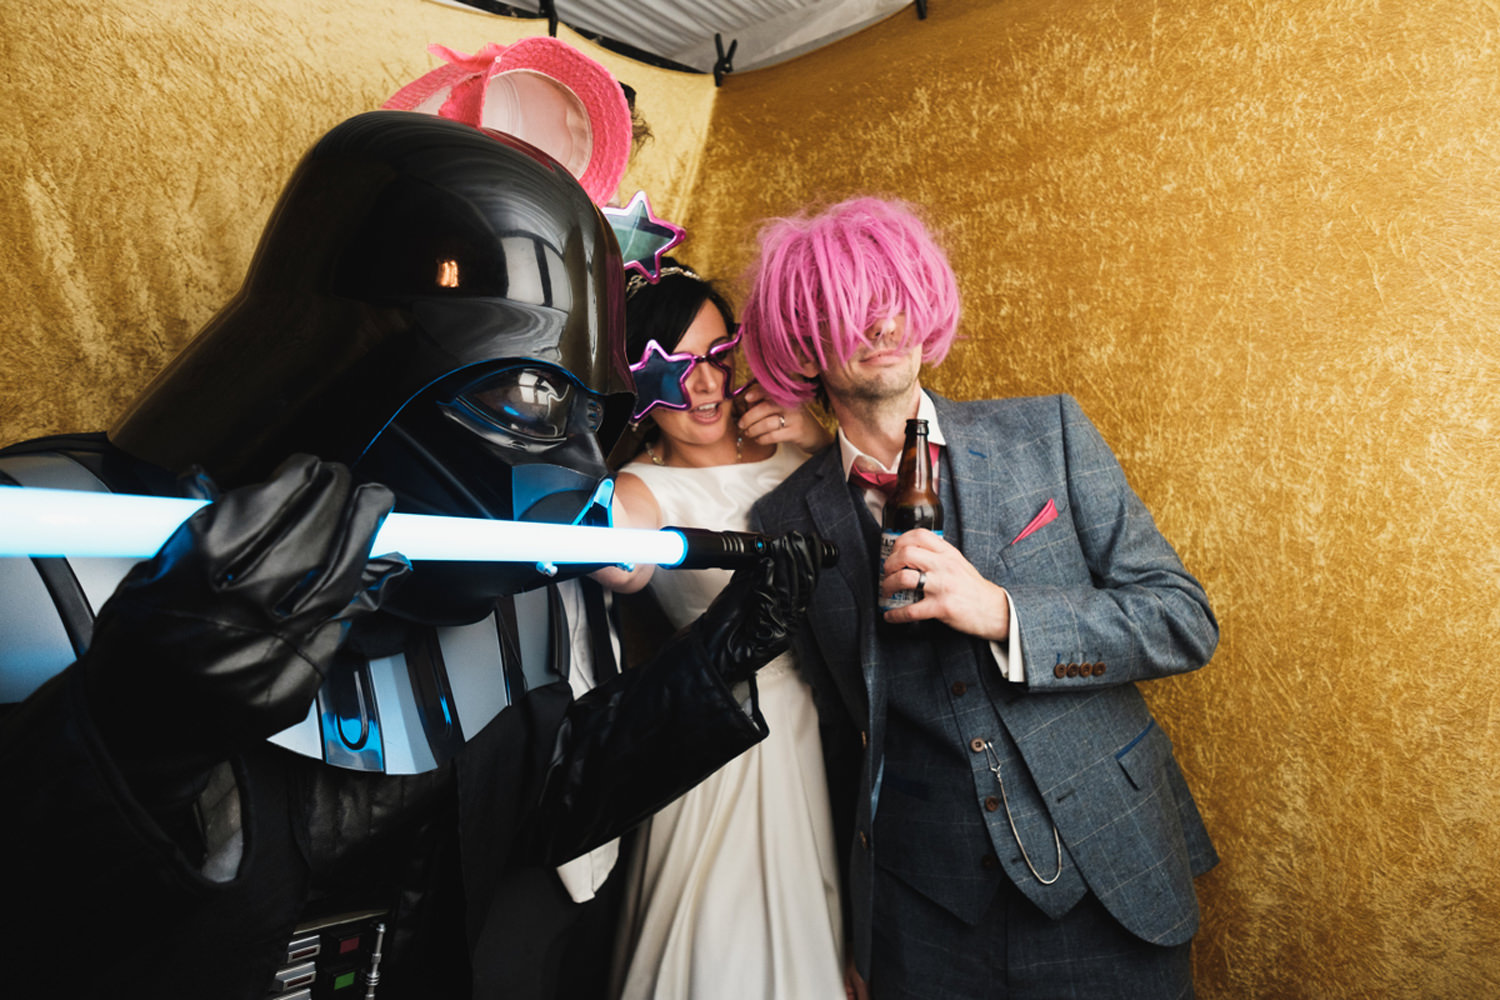 darth vader in the photobooth at the end of the wedding